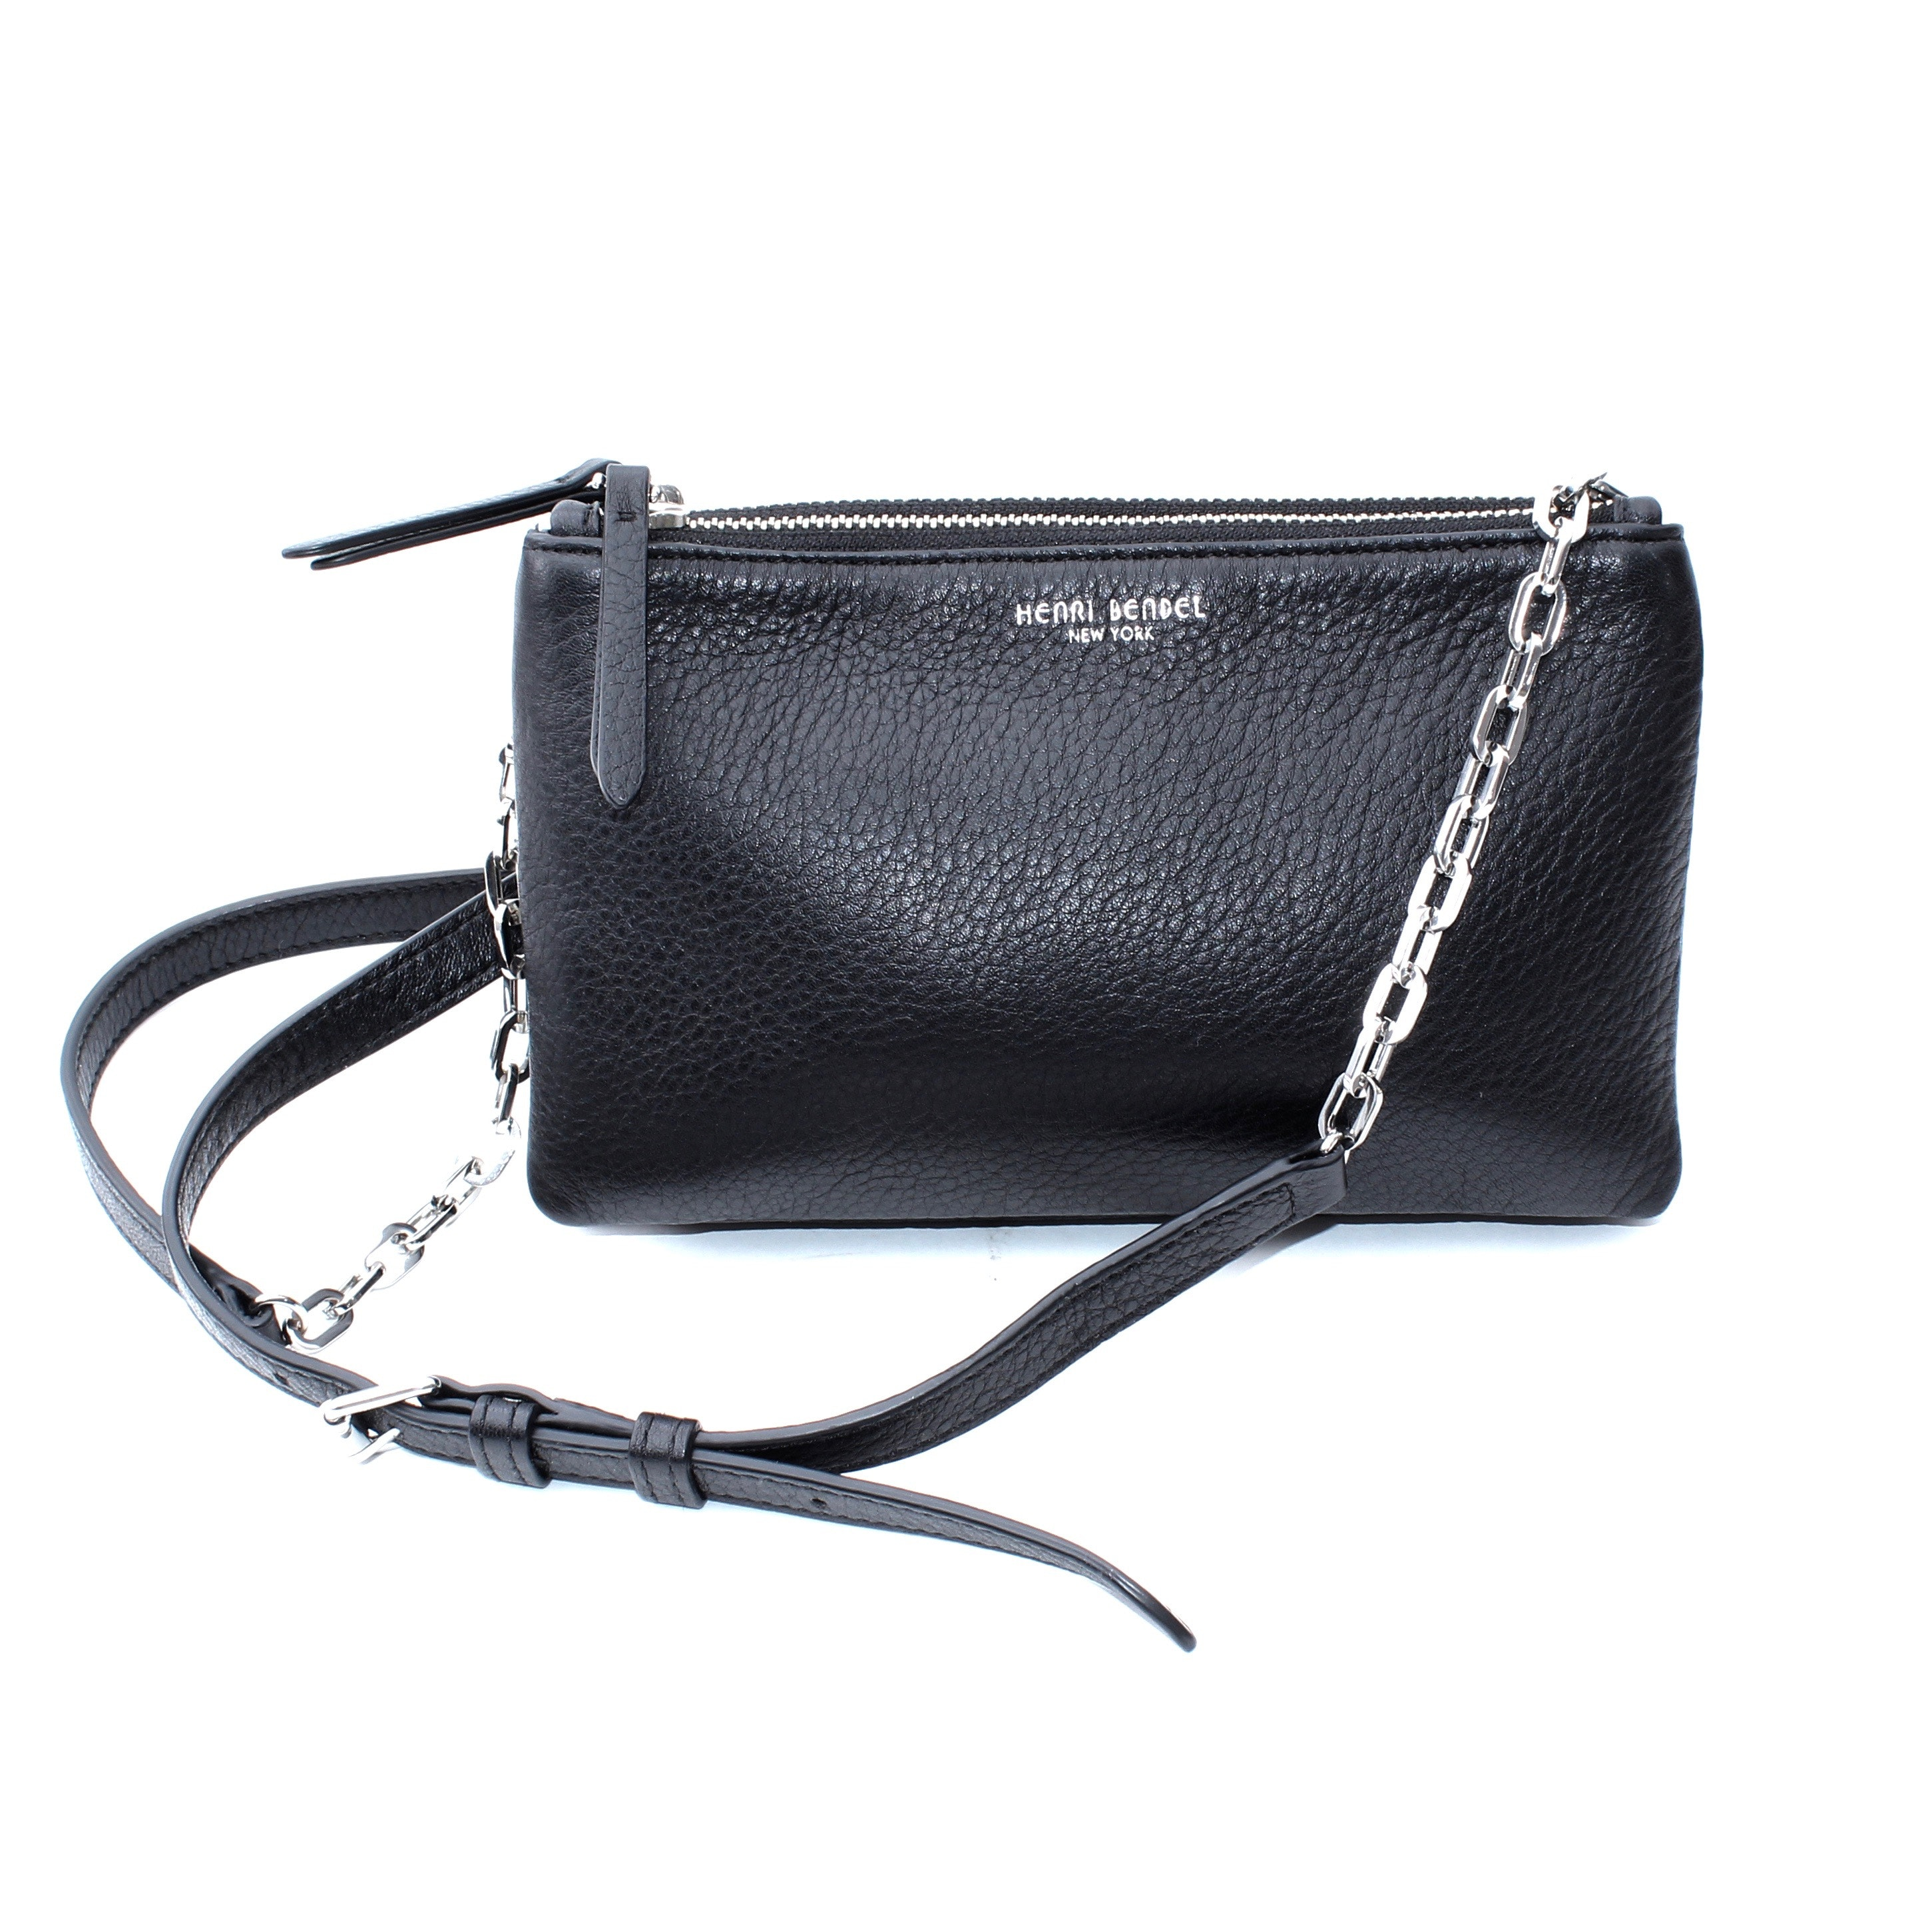 Henri Bendel New York Soho Black Leather Cross Body Bag